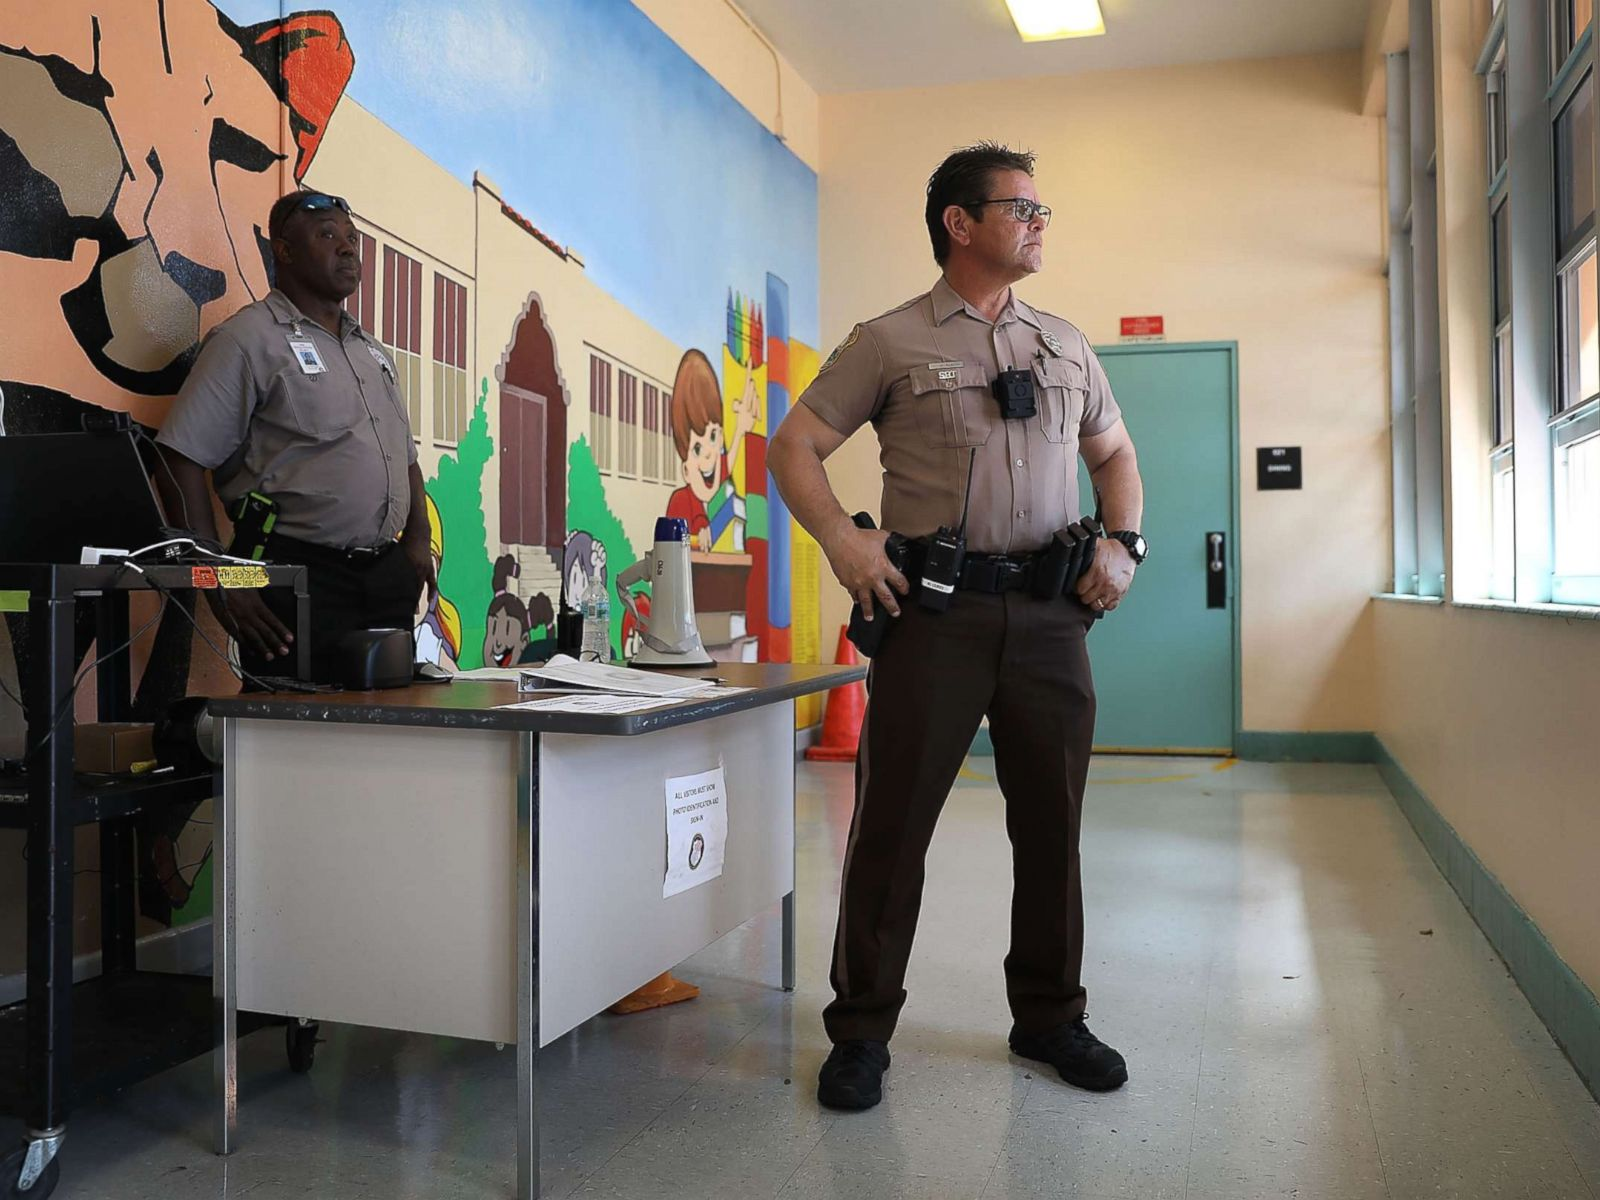 Suspensions Expulsions Arrests Dont >> Schools Getting More Police But At The Expense Of Counselors